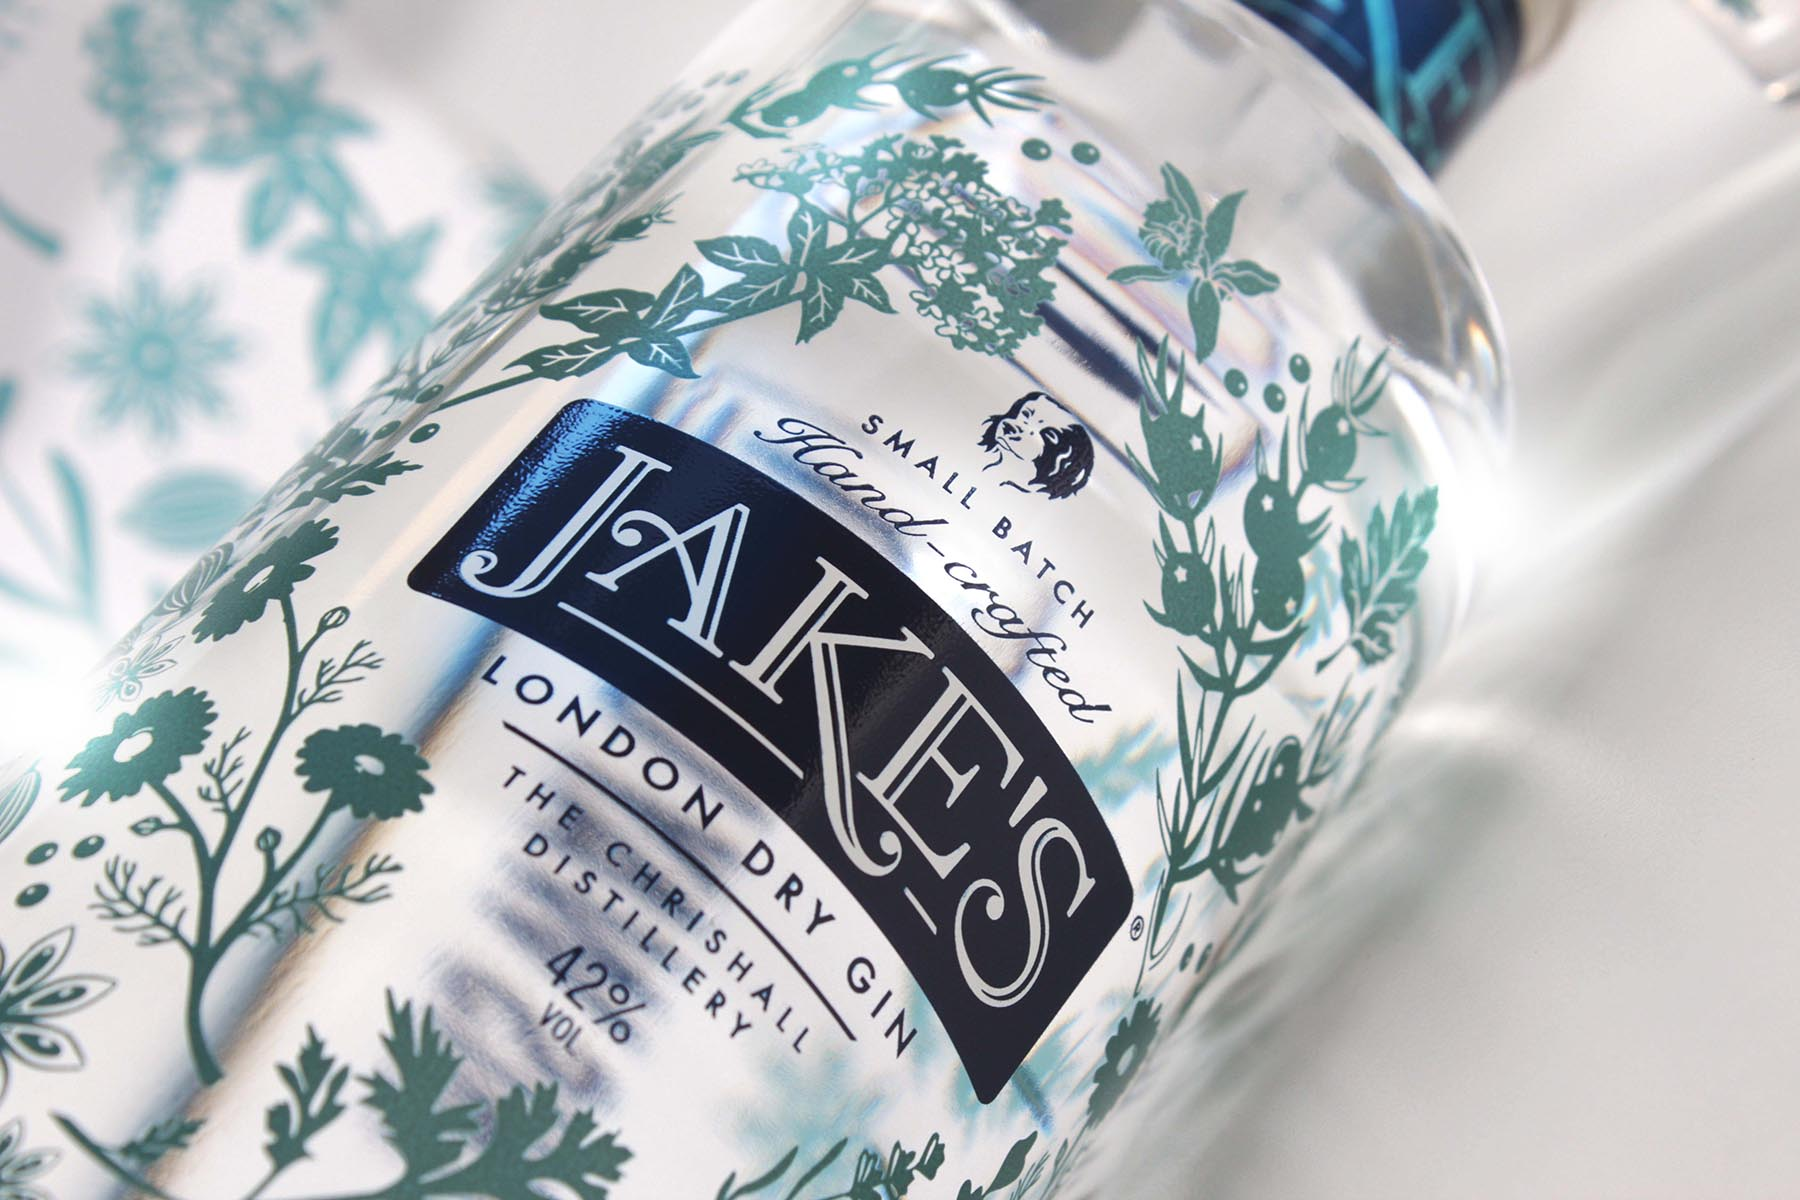 jakes-gin-bottle-closeup